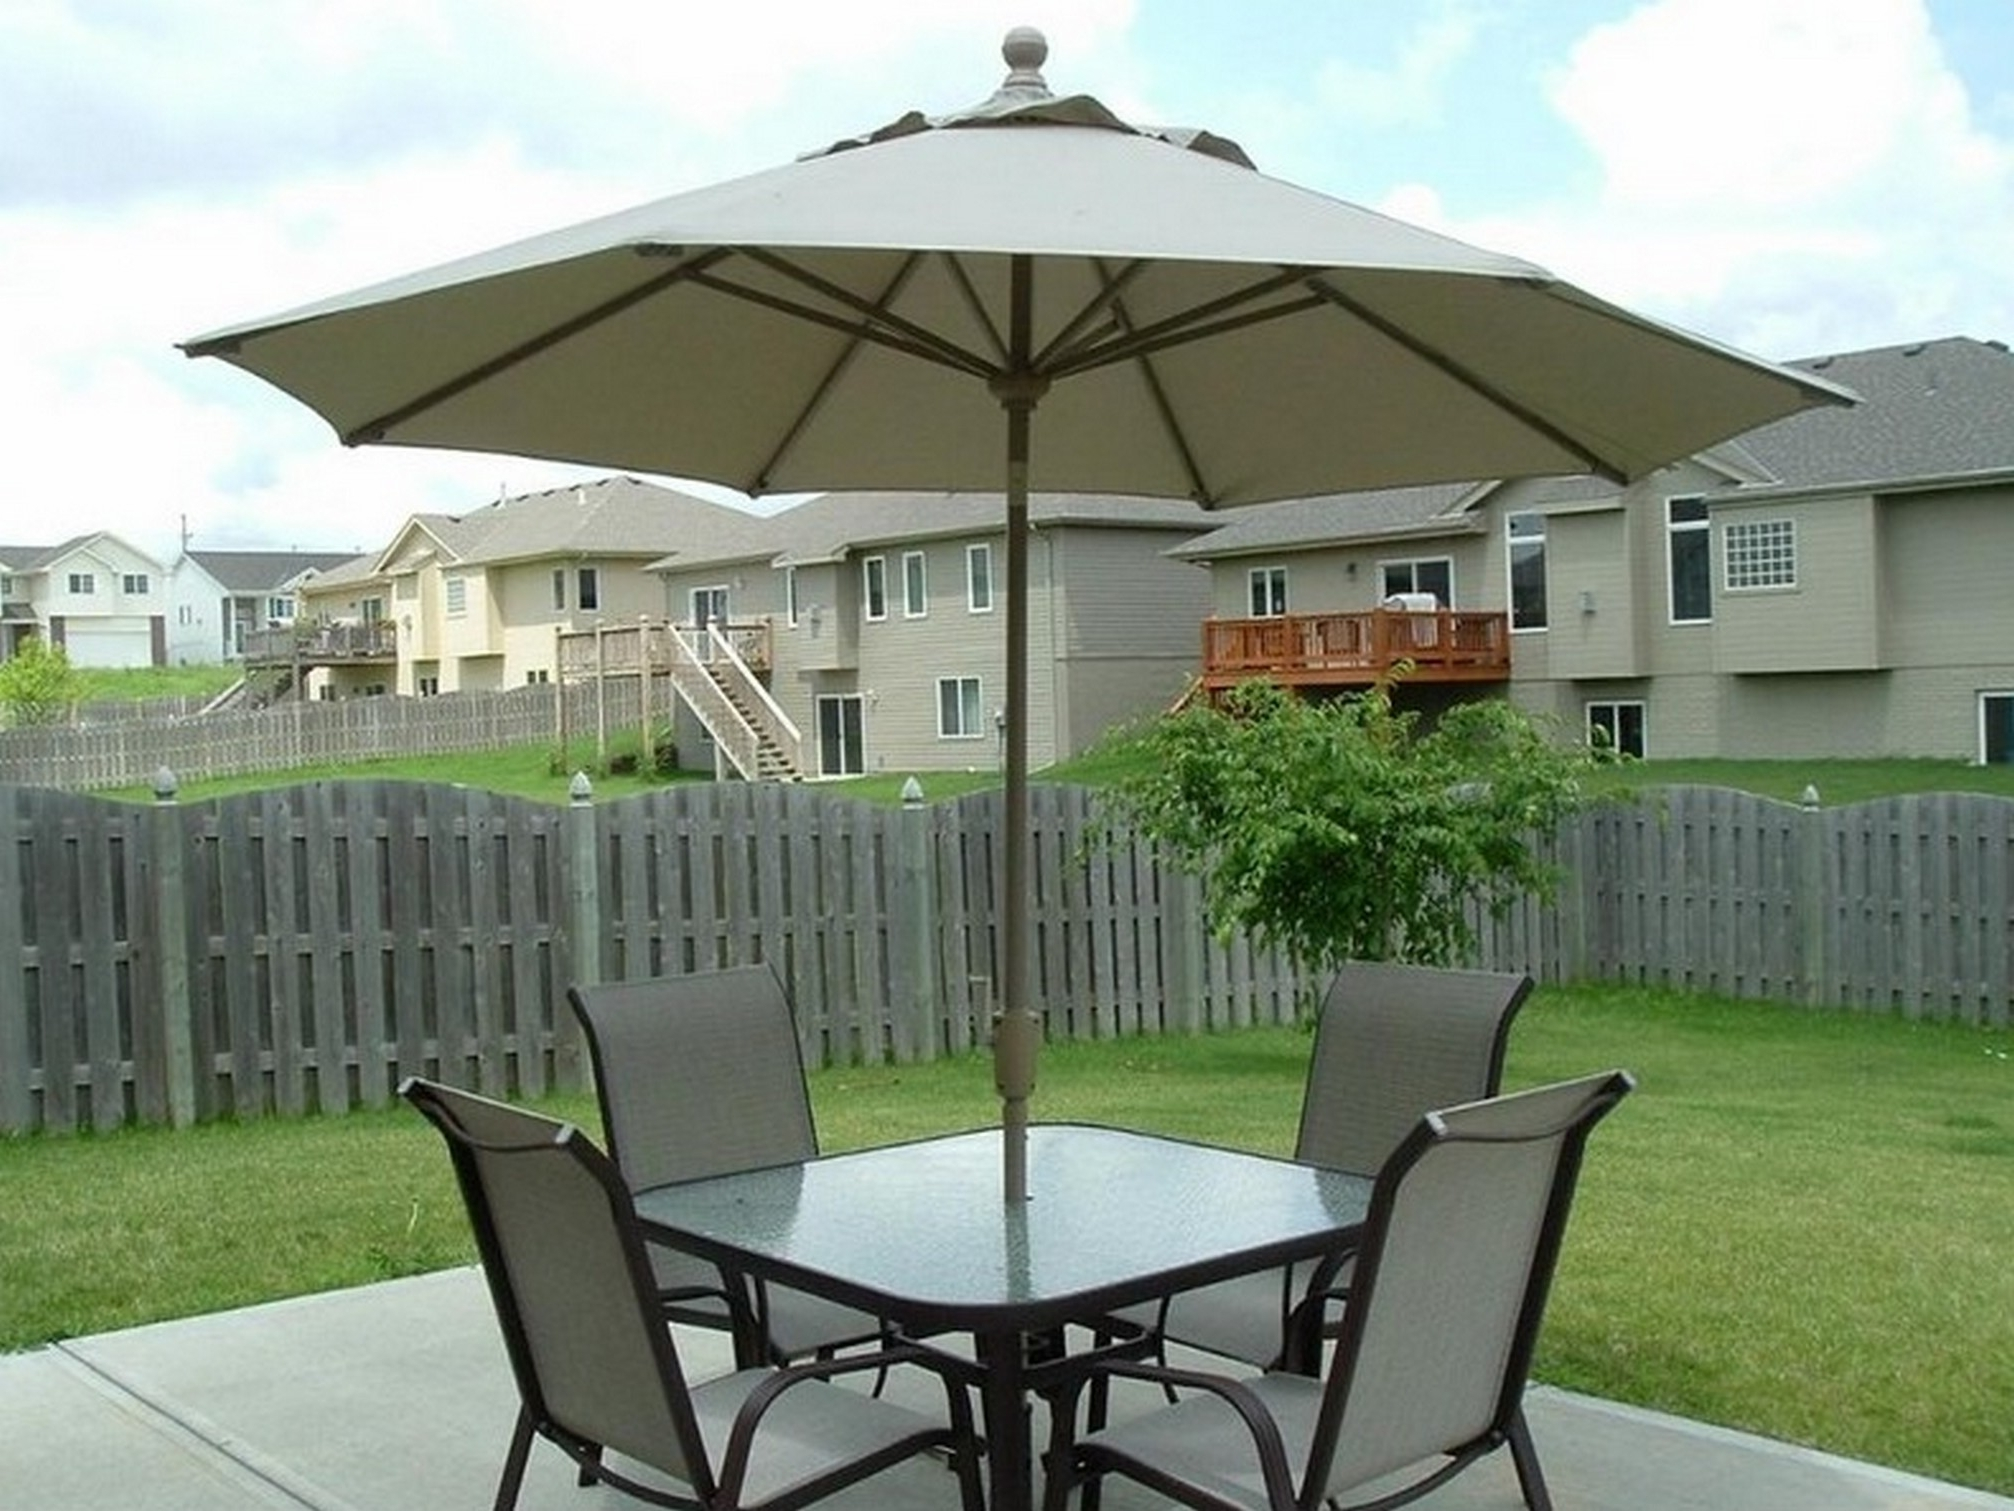 Patio Umbrellas For Tables For Well Known Patio: Astounding Patio Table And Chairs With Umbrella Outdoor (View 4 of 20)